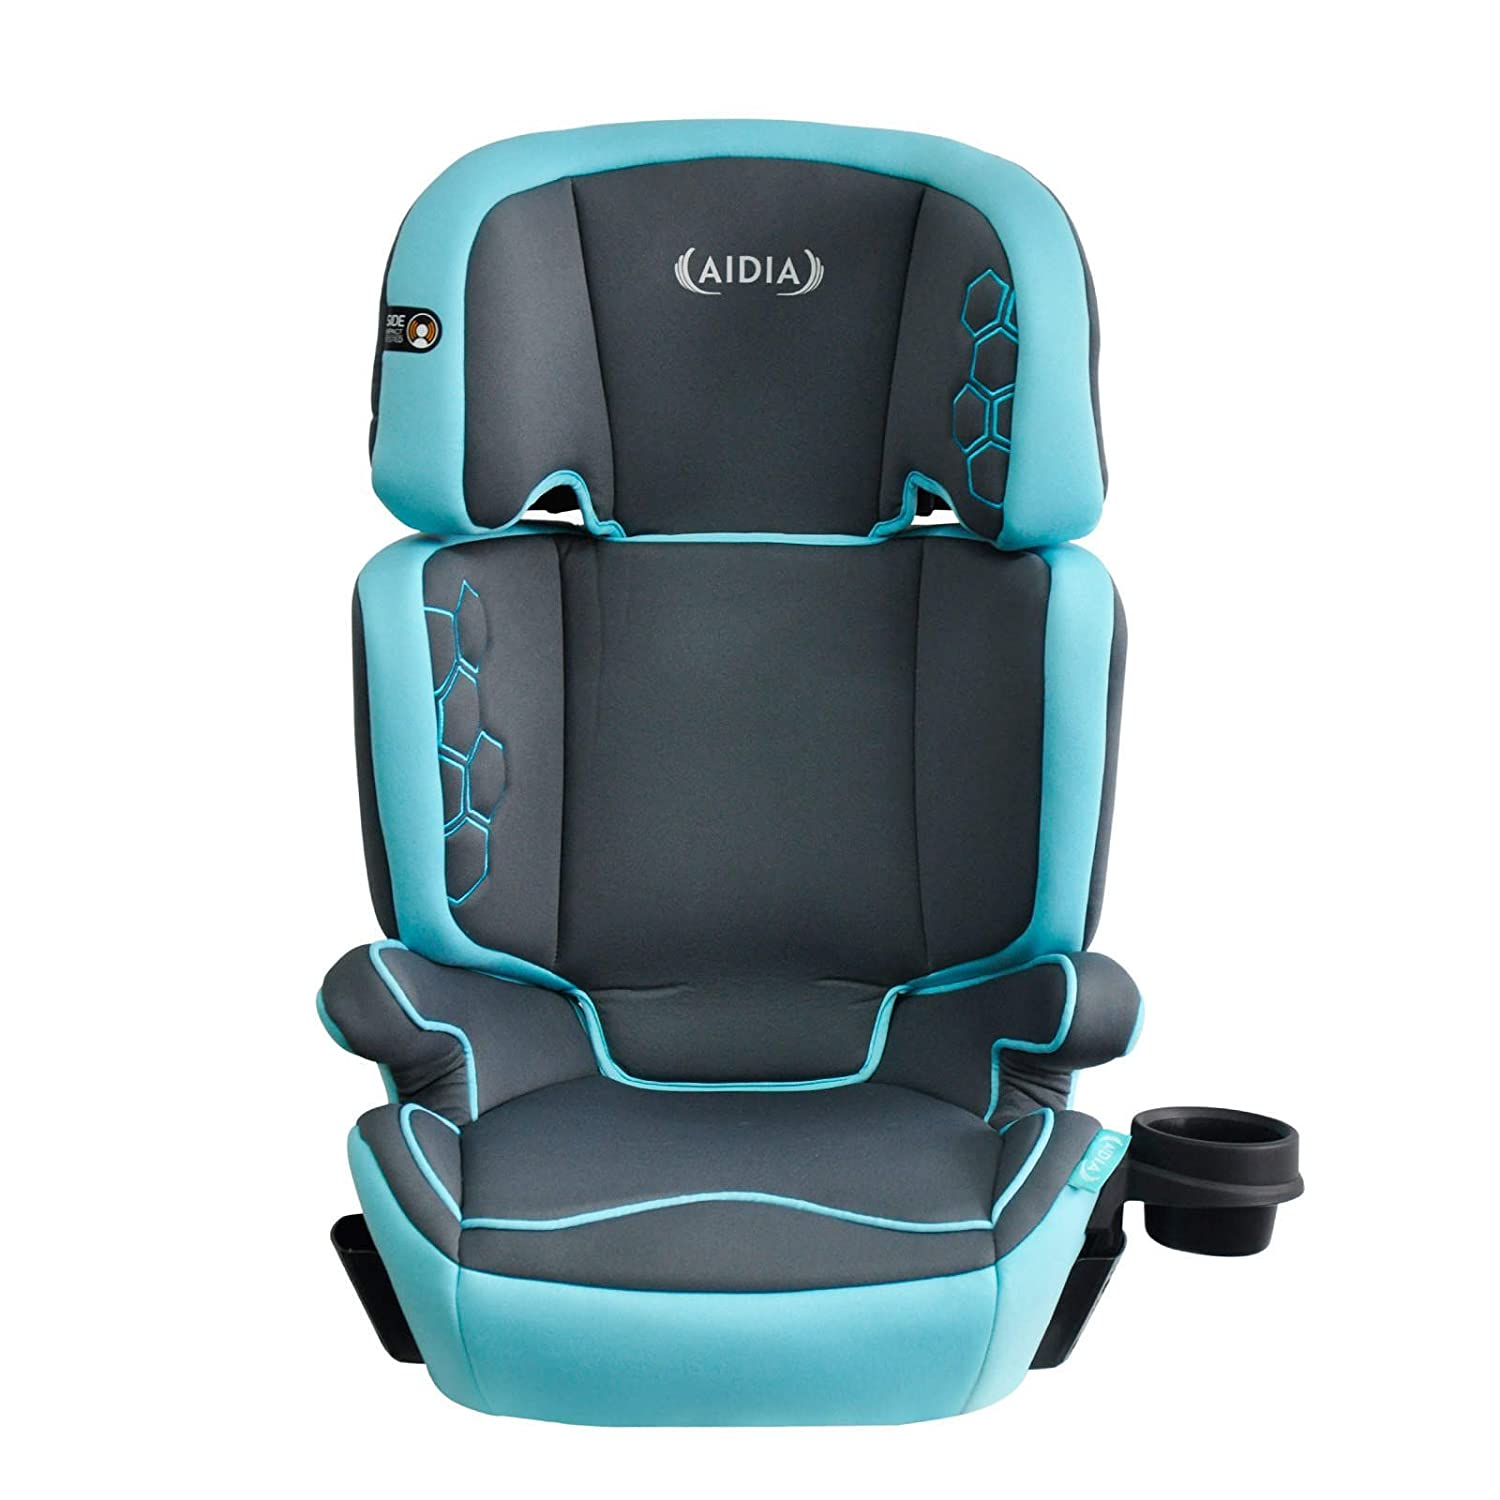 Aidia Explorer 2-in-1 Safety Booster Car Seat, Grey/Blue AD01/Endeavour